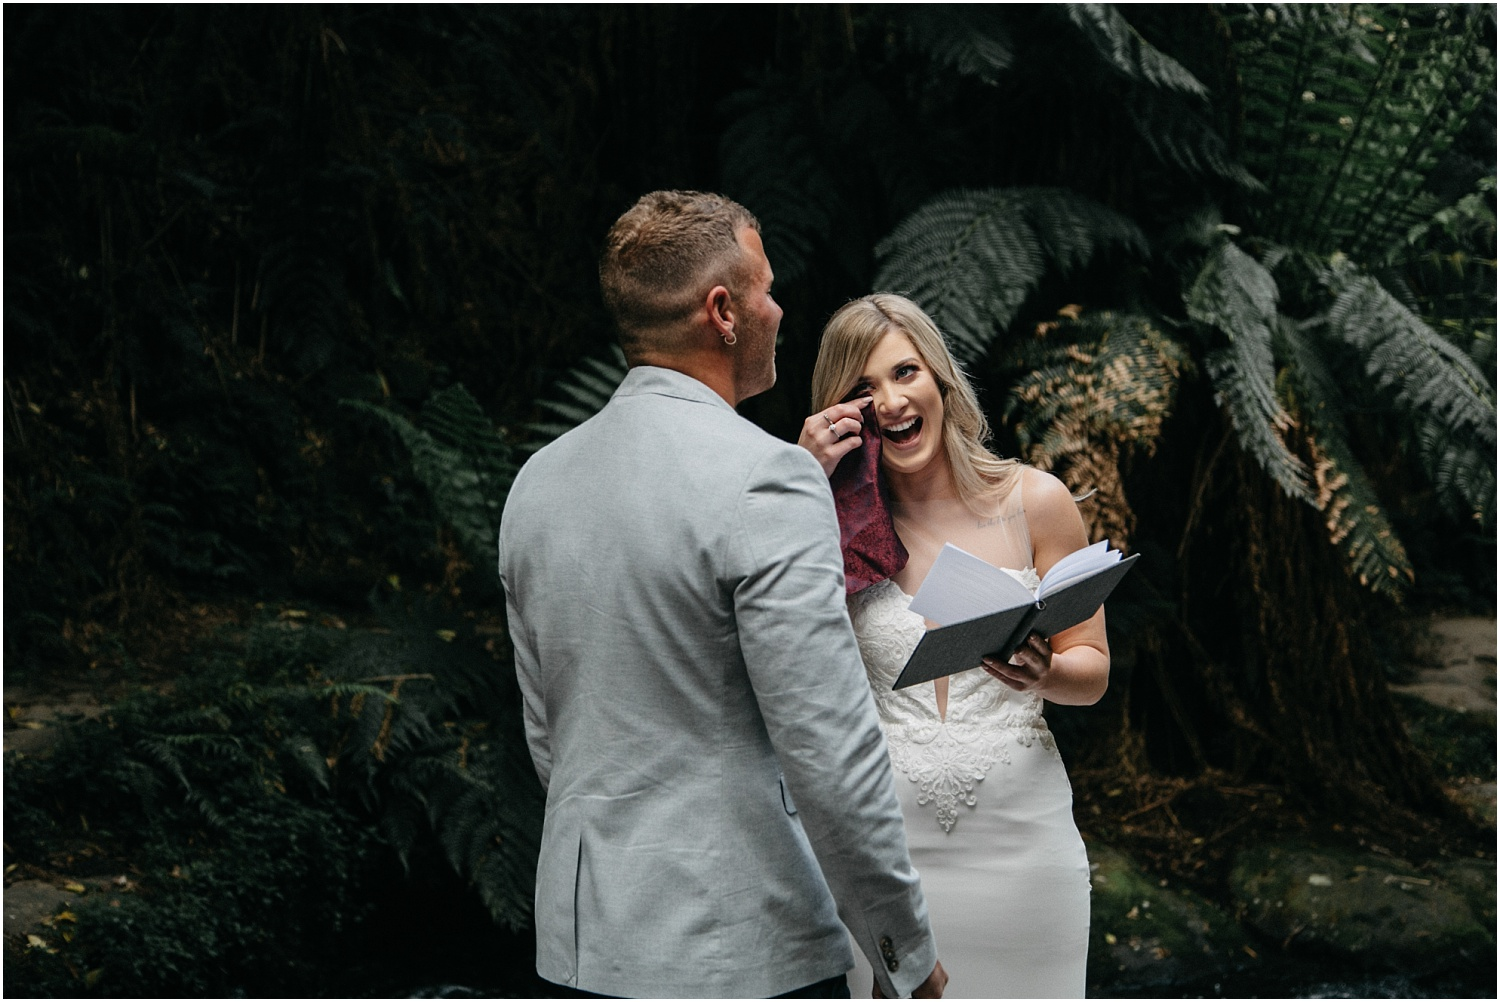 Renee and Ash's real elopement in Lorne on the Great Ocean Roadwith the ceremony at erskin falls._0081.jpg